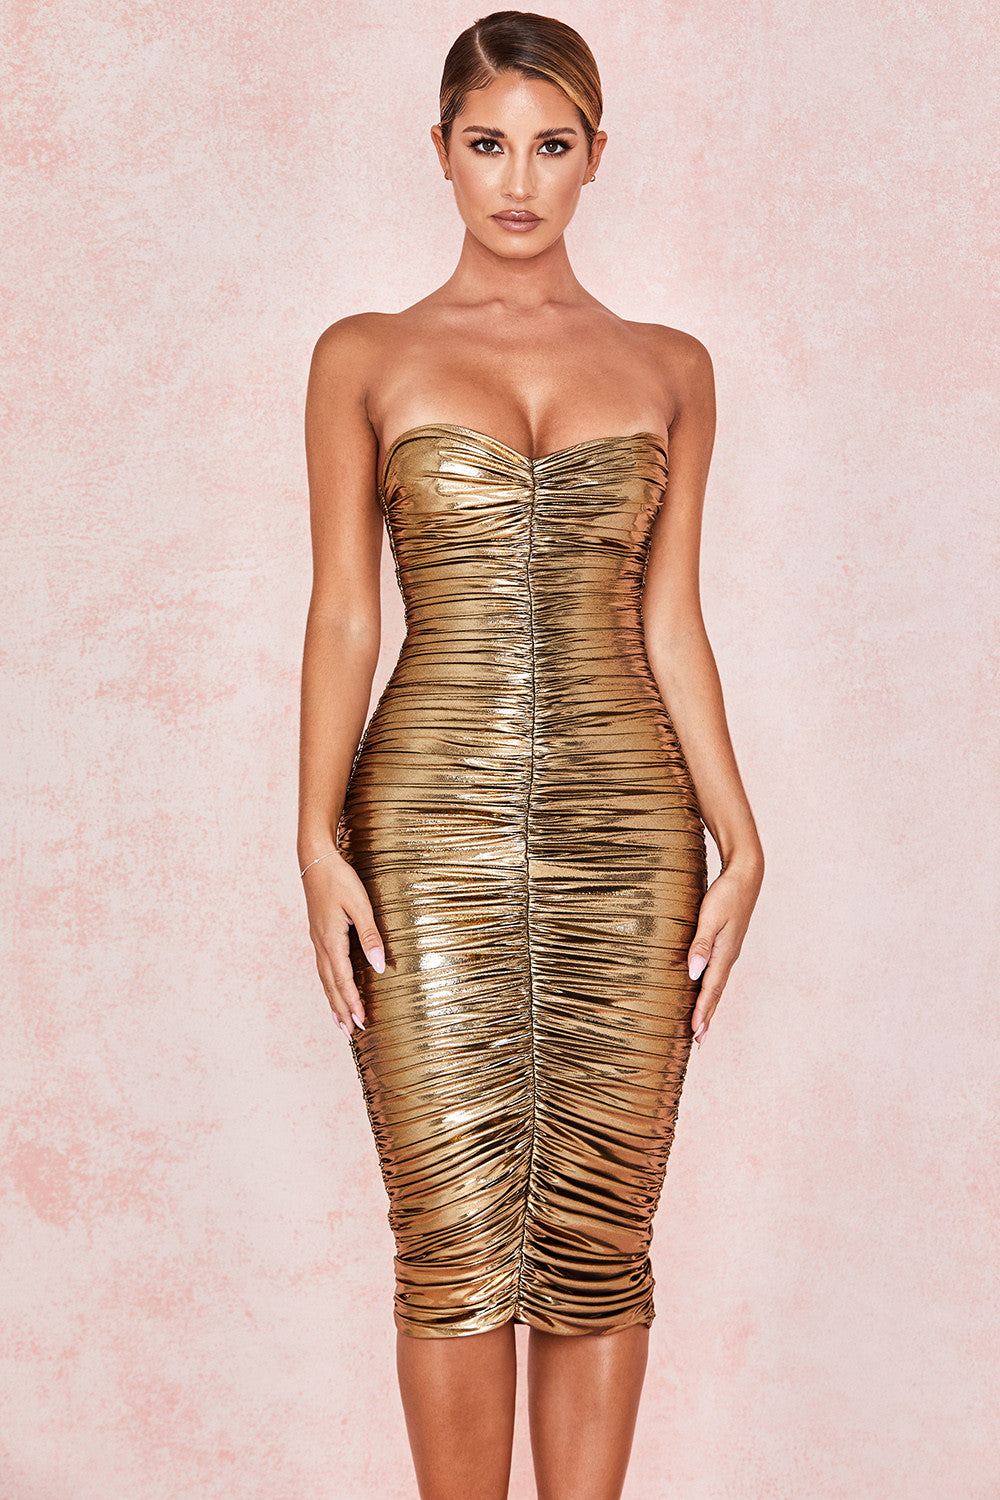 Metallic Gold Strapless Dress - iulover